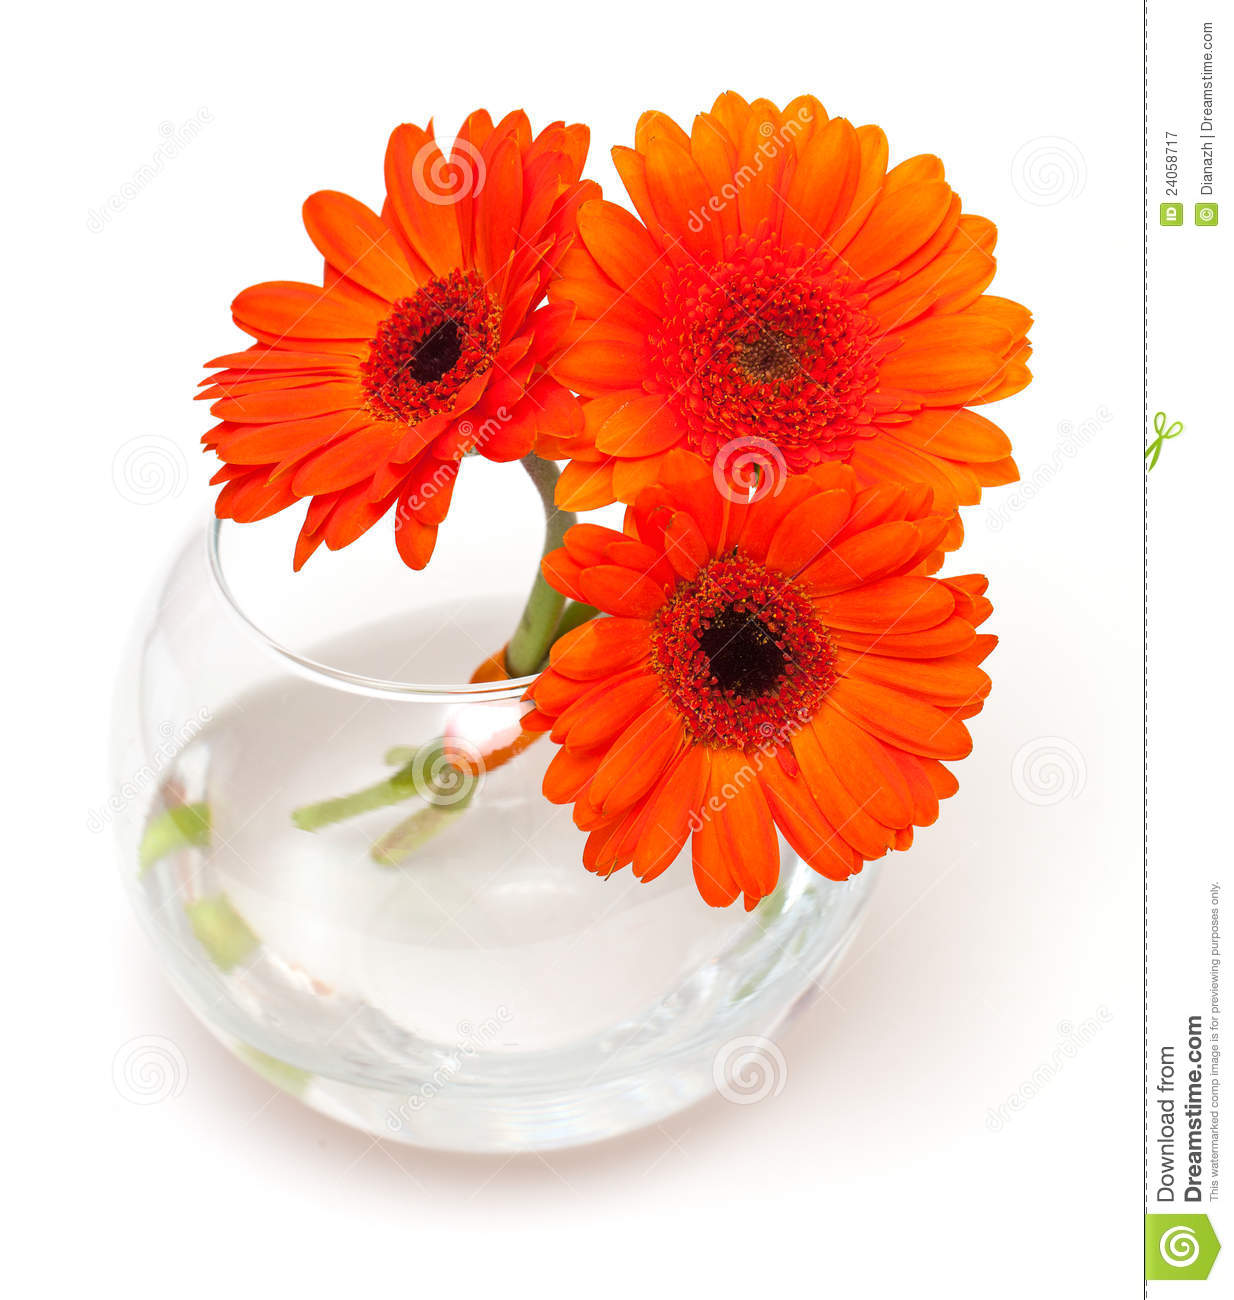 Orange Daisy Flowers In A Glass Vase Royalty Free Stock